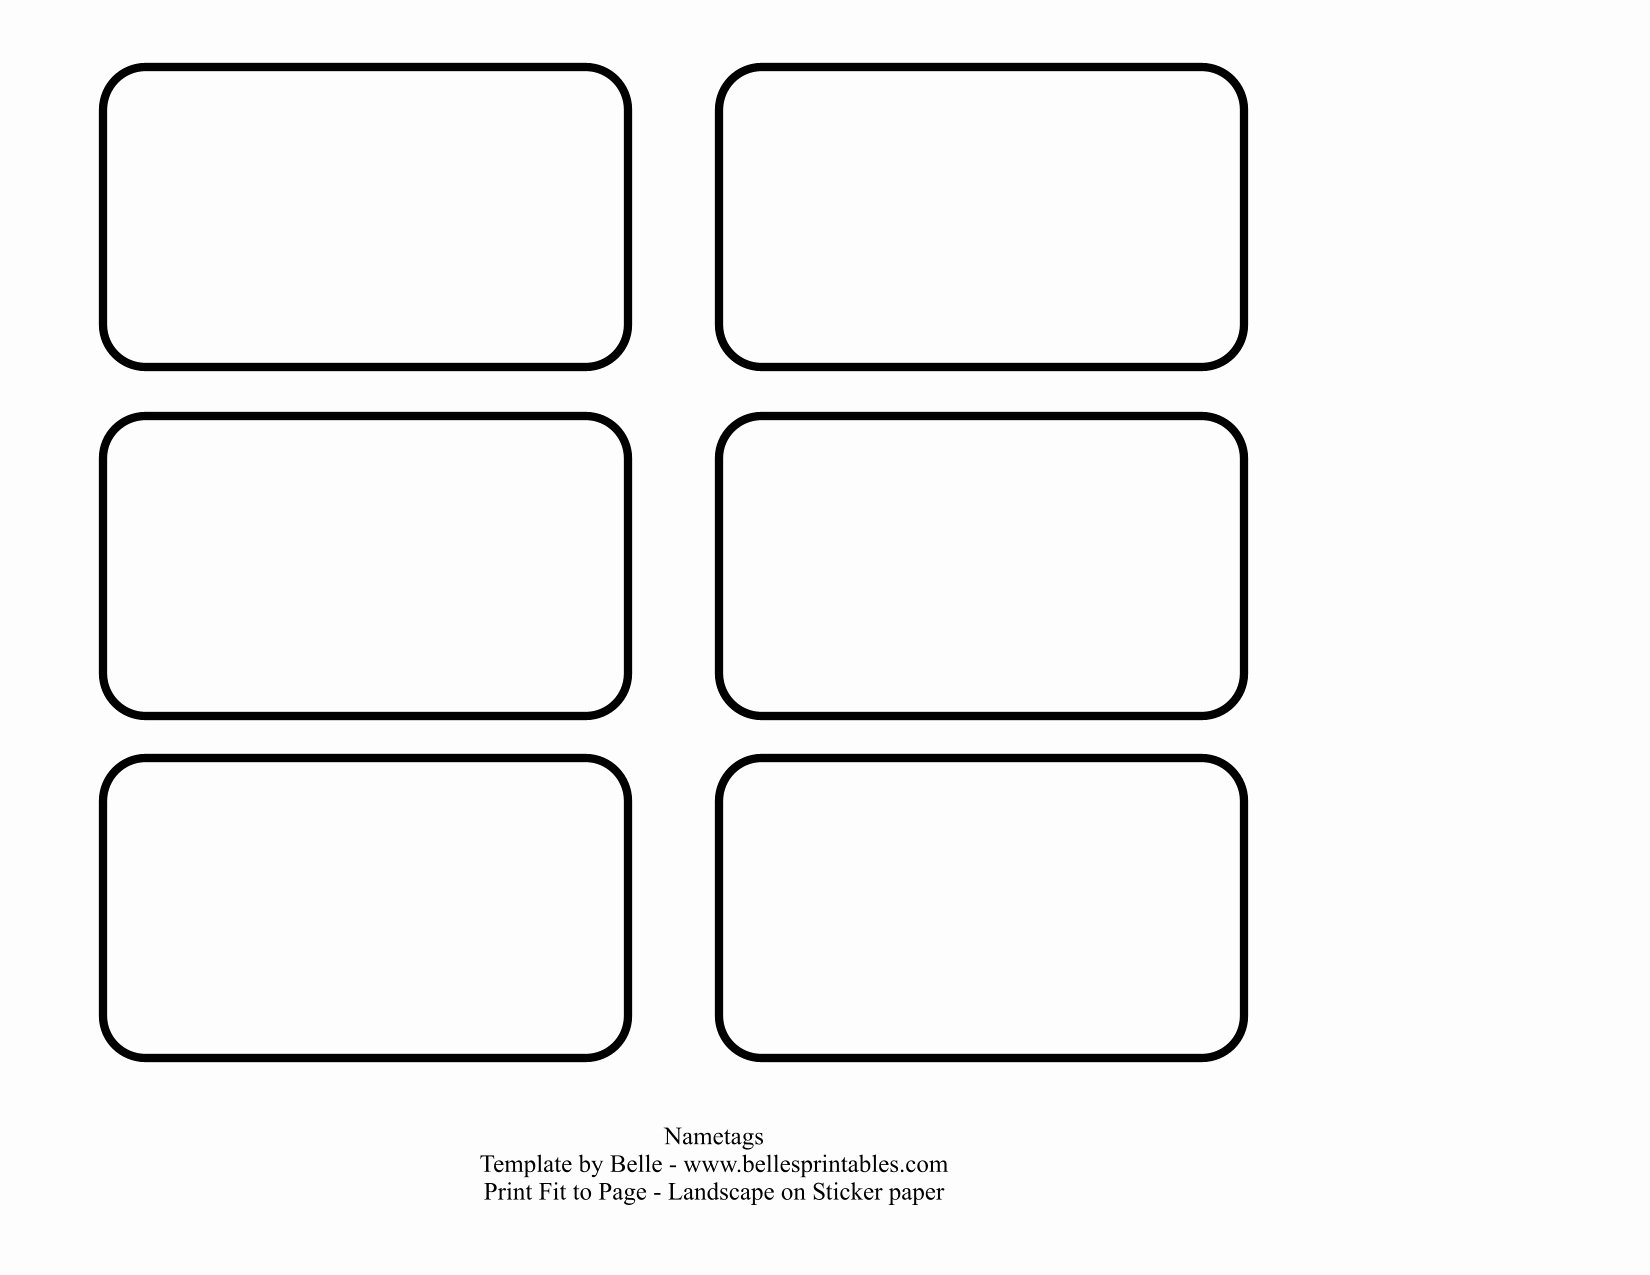 Free Printable Name Tags Template